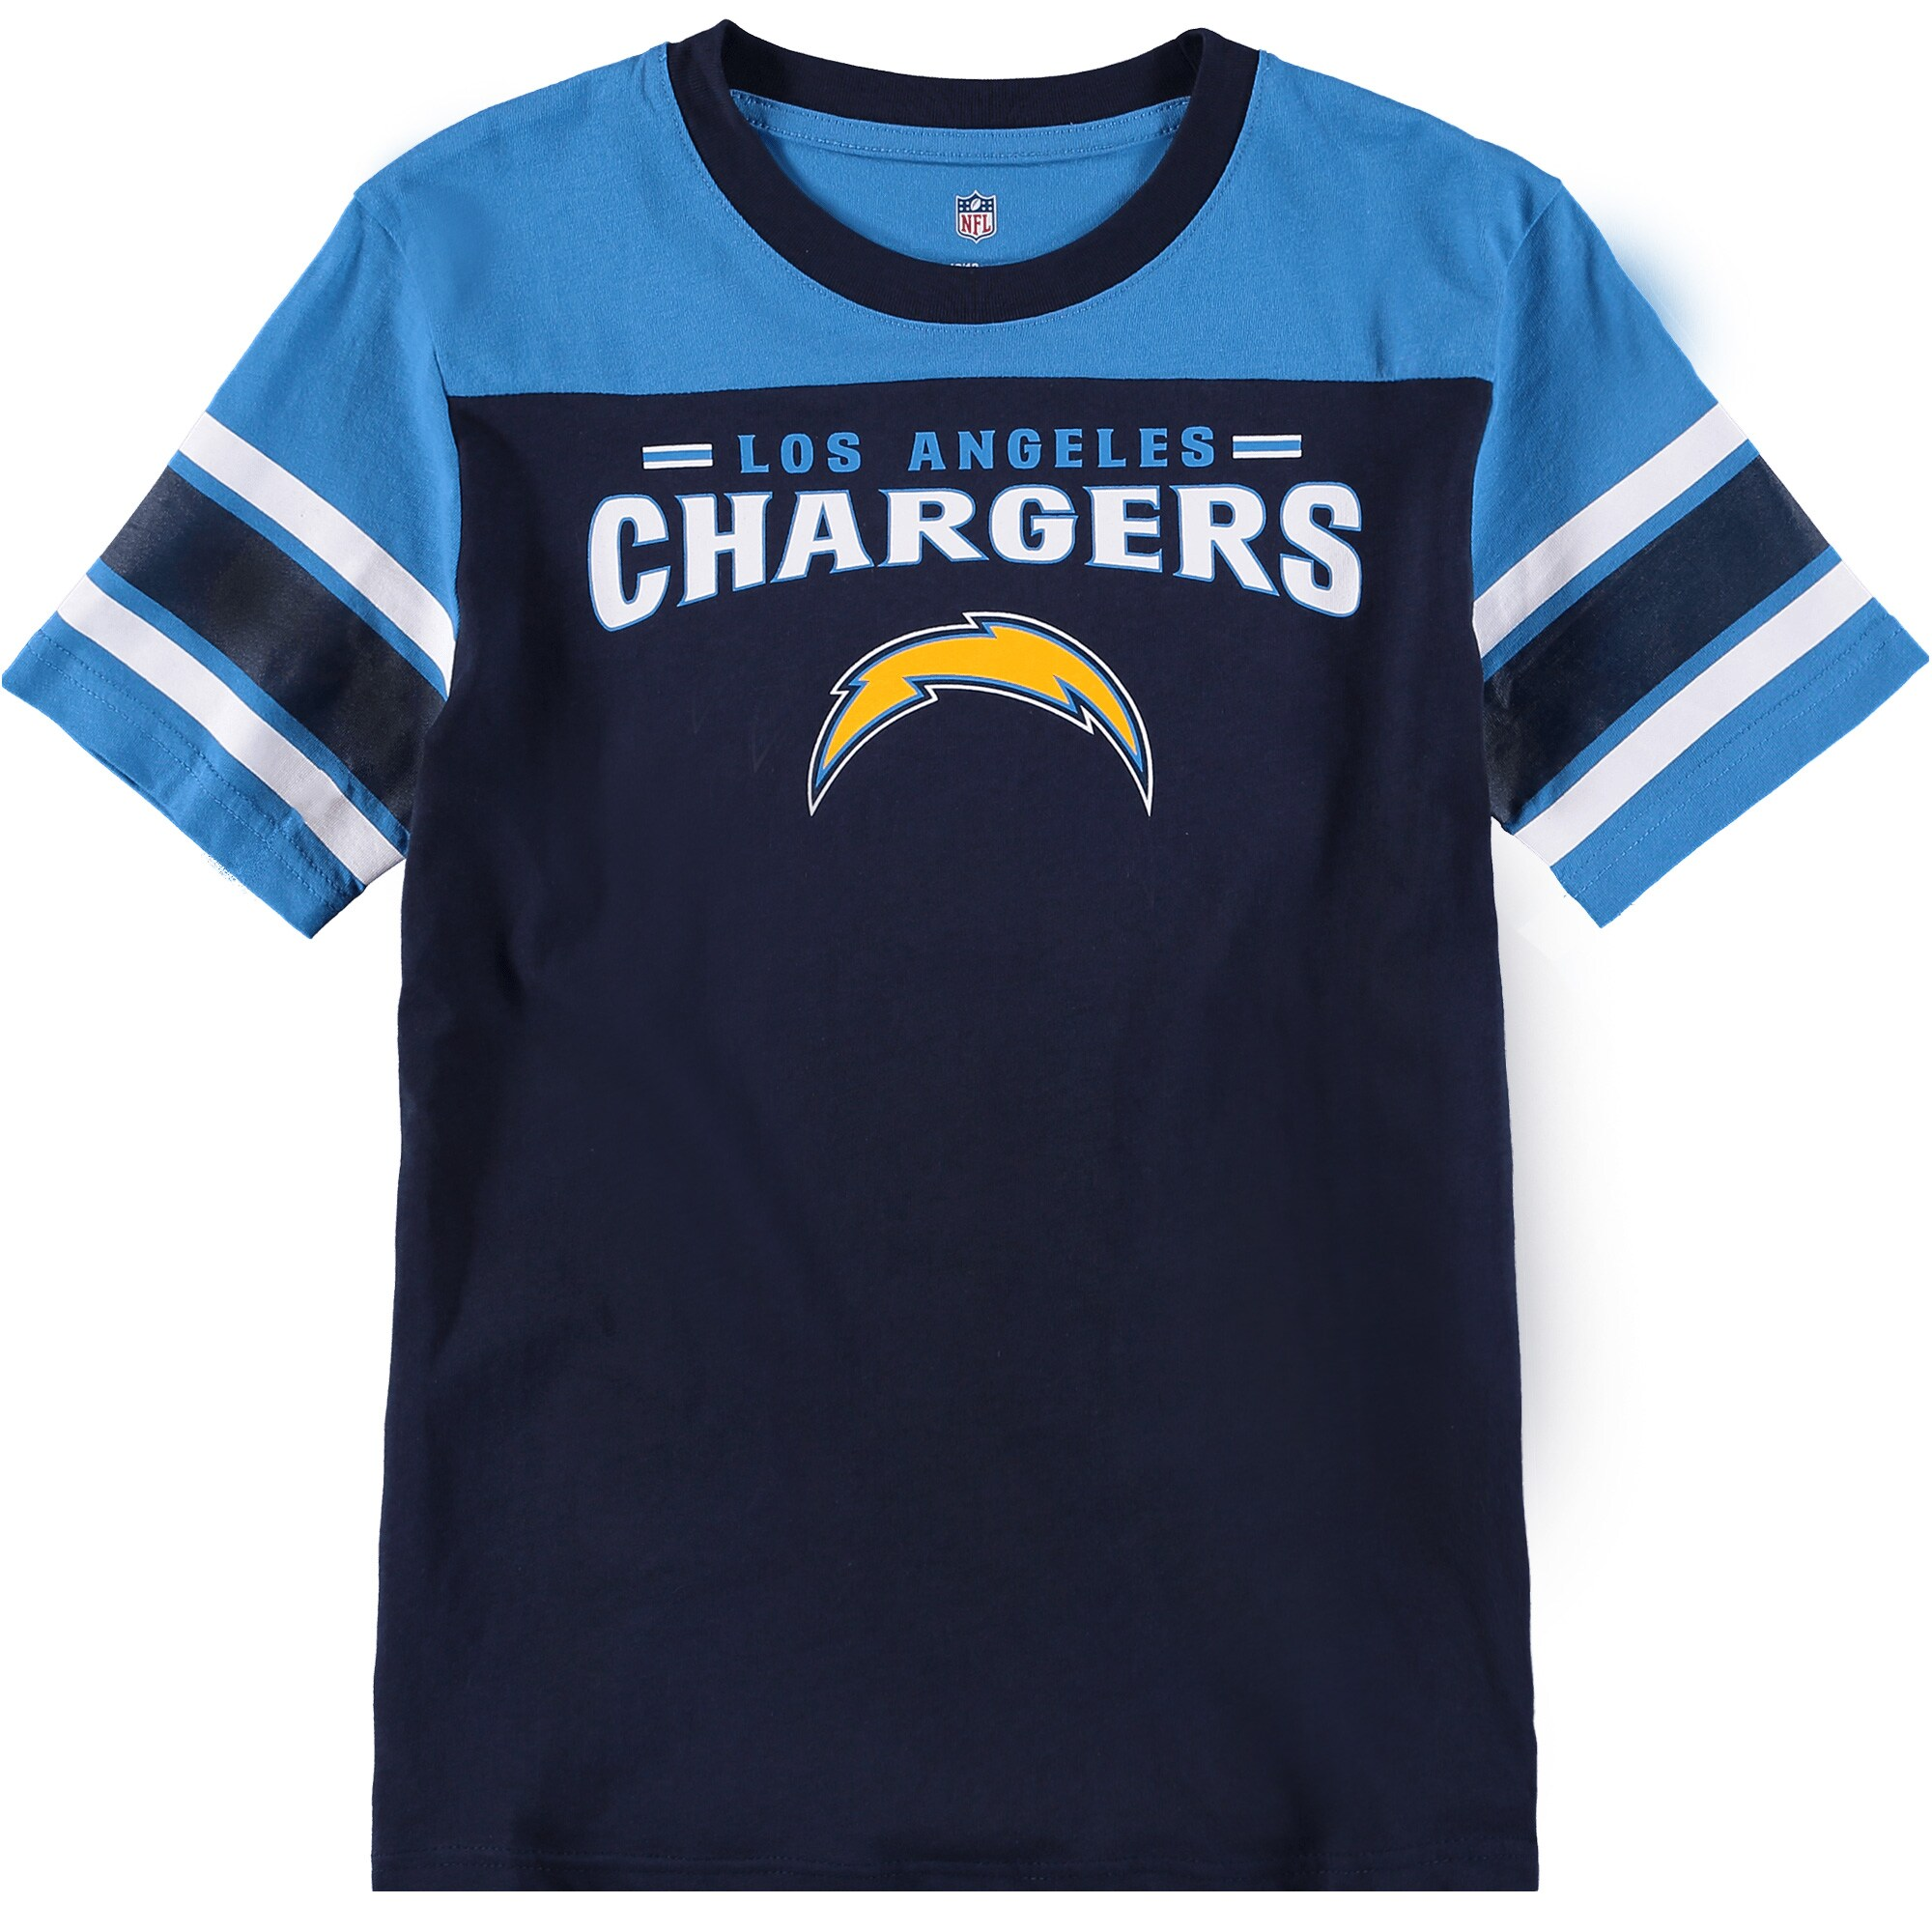 Los Angeles Chargers Youth Fan Gear Loyalty T-Shirt - Navy